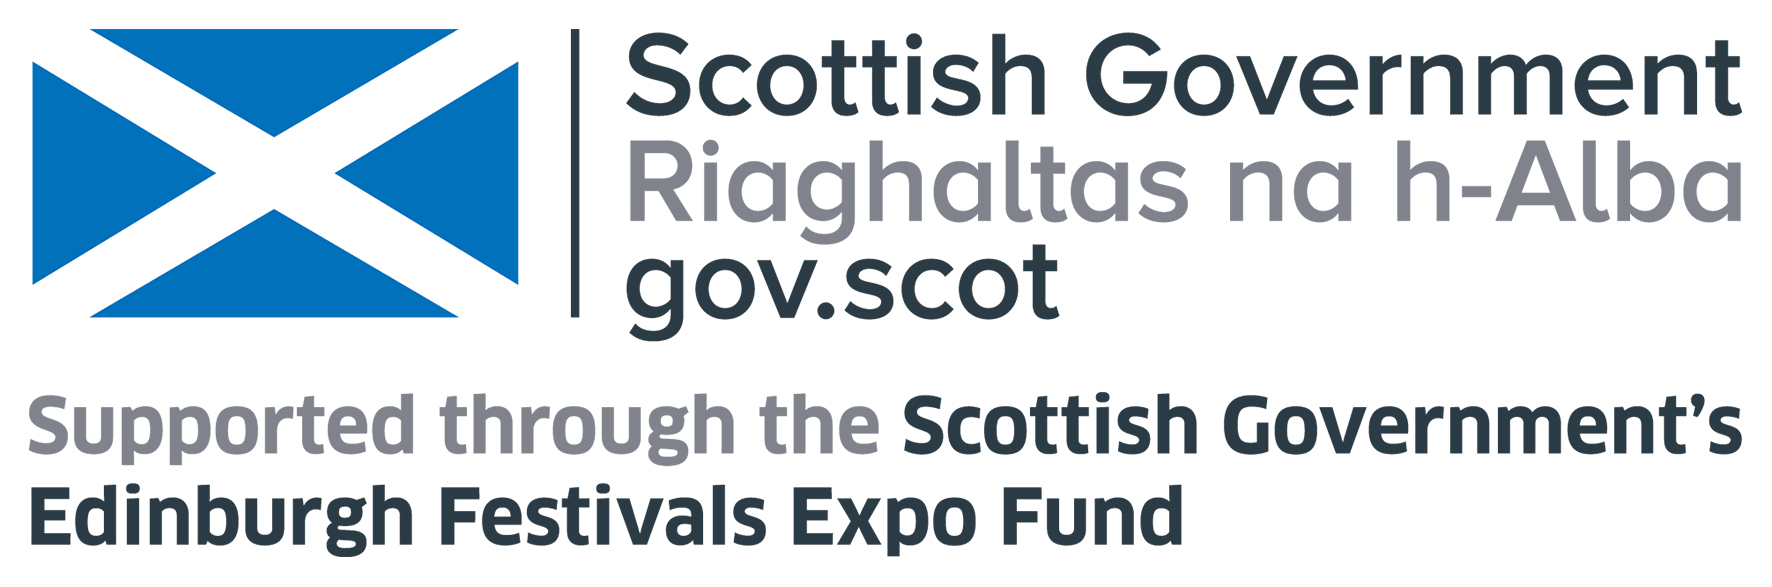 Scottish Government EXPO Fund